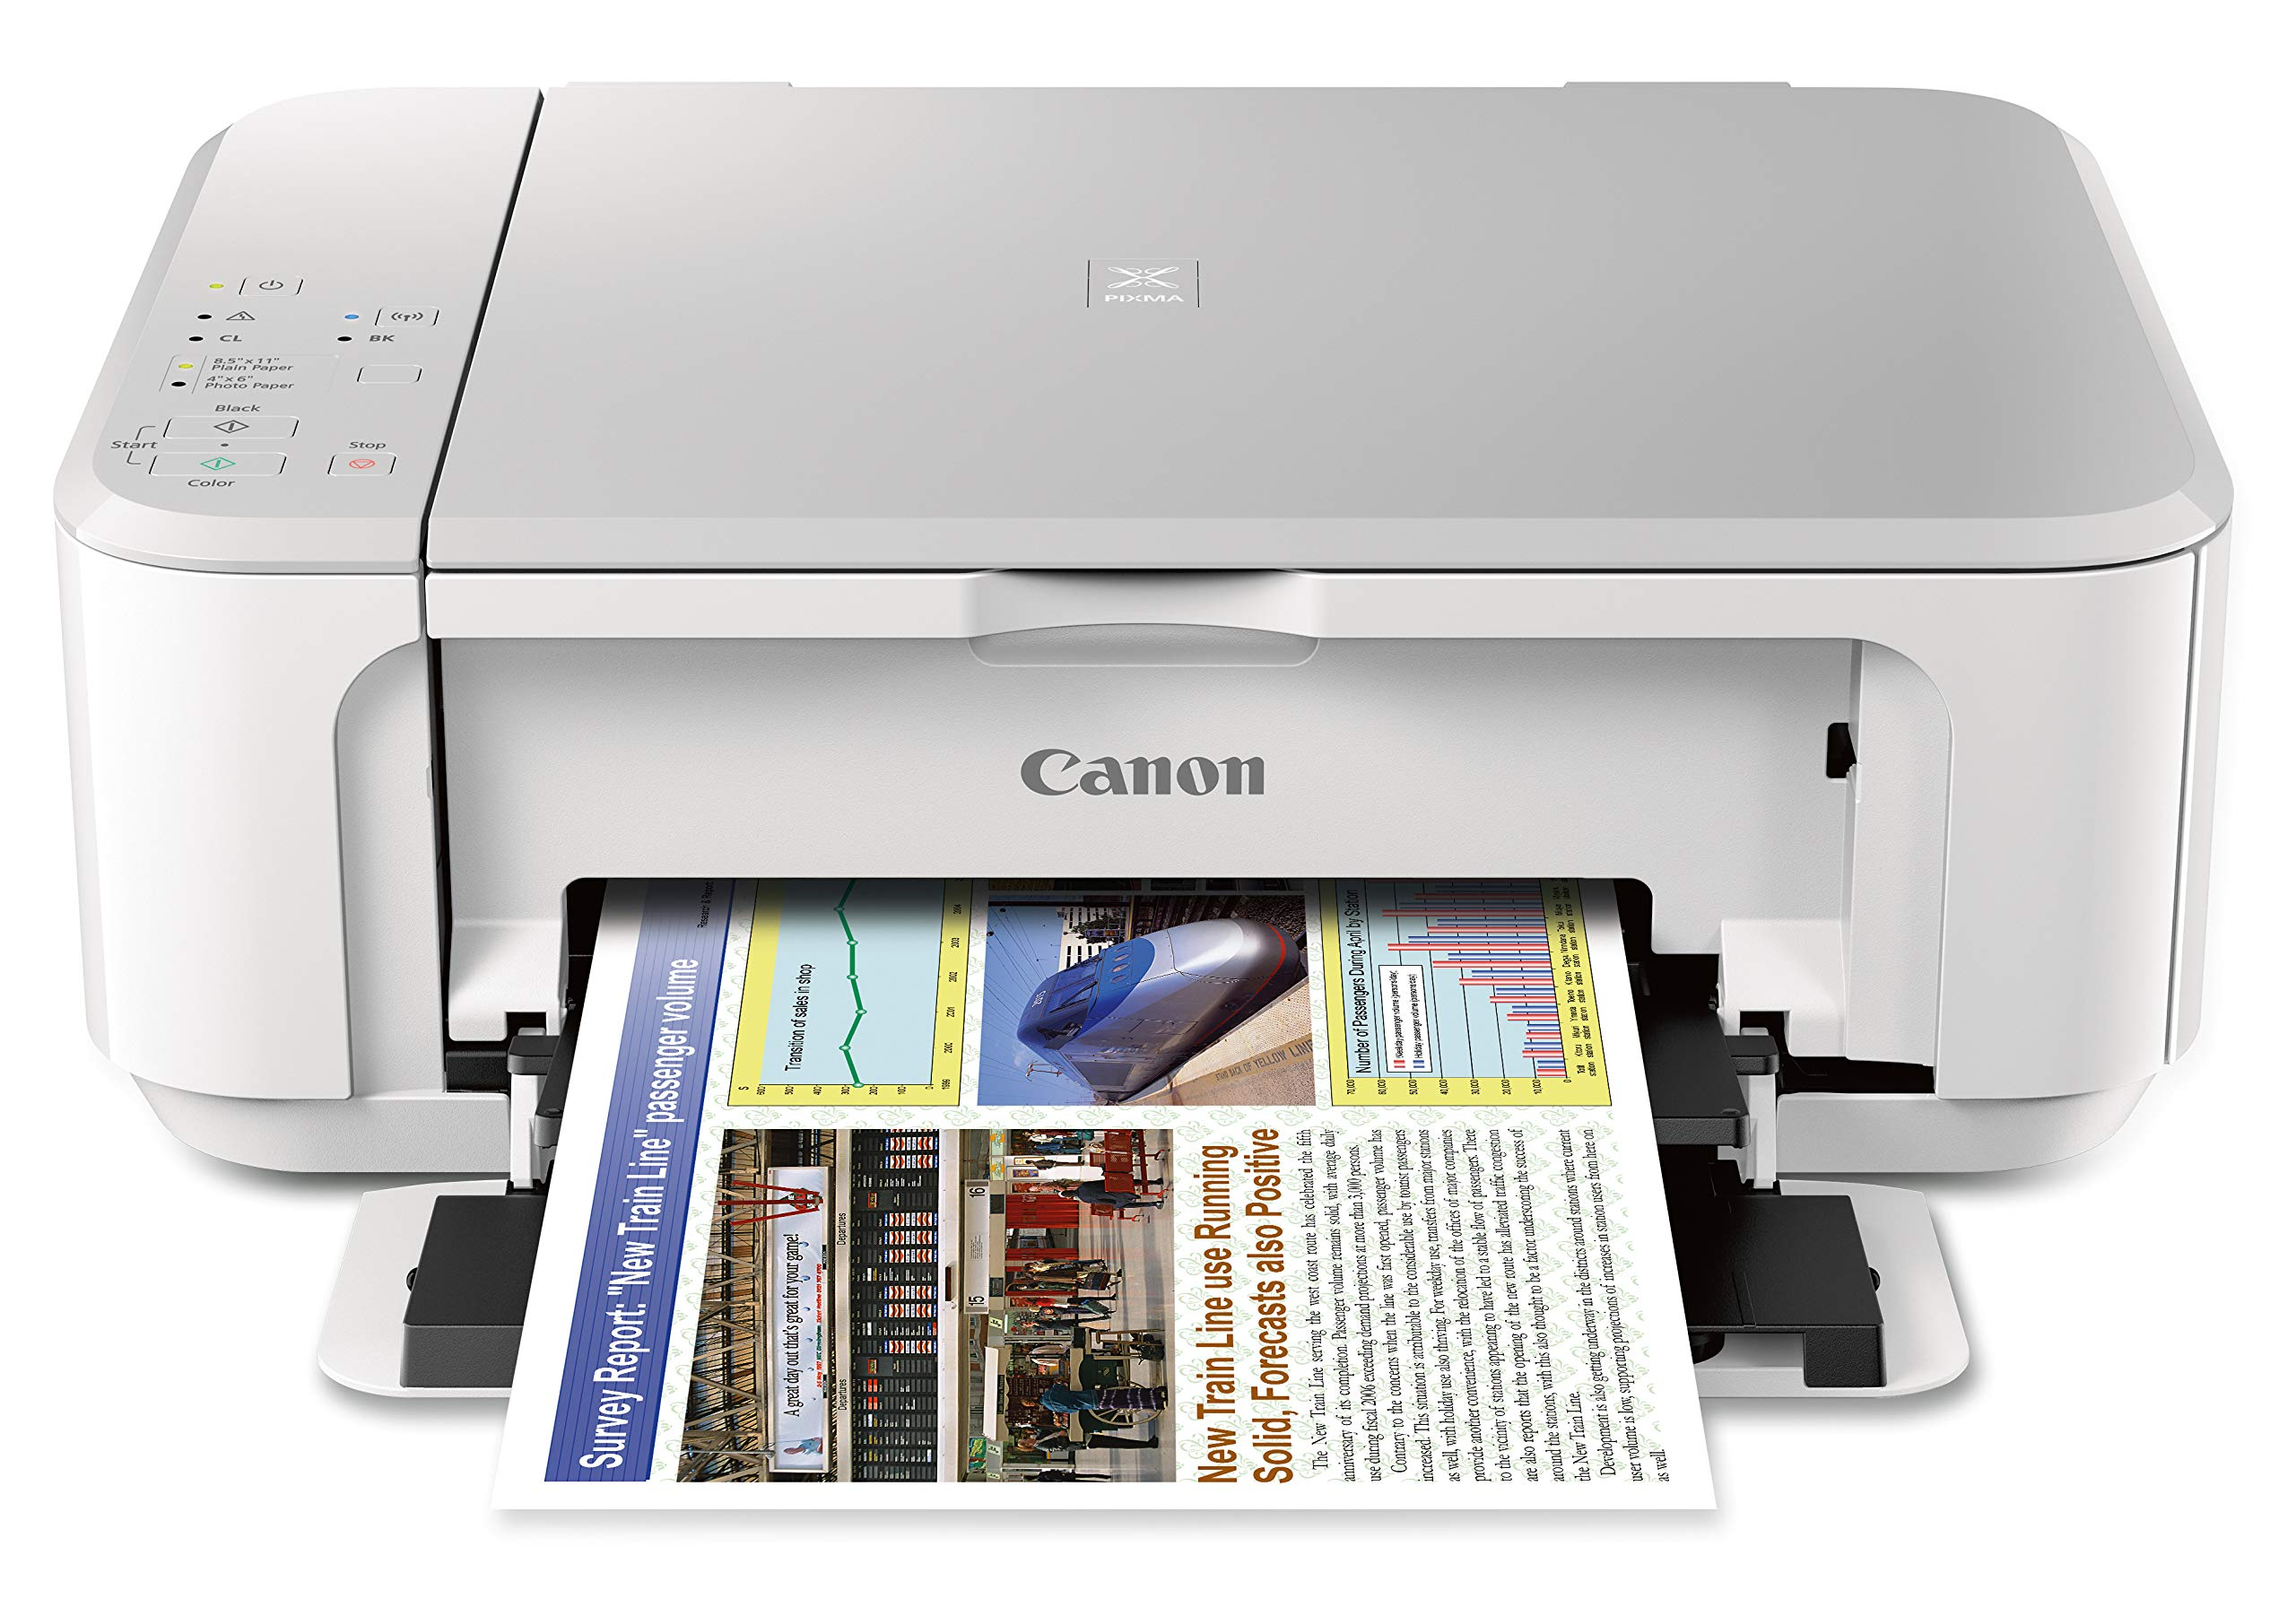 Canon PIXMA MG3620 Wireless All-In-One Color Inkjet Printer with Mobile and Tablet Printing, White by Canon (Image #1)